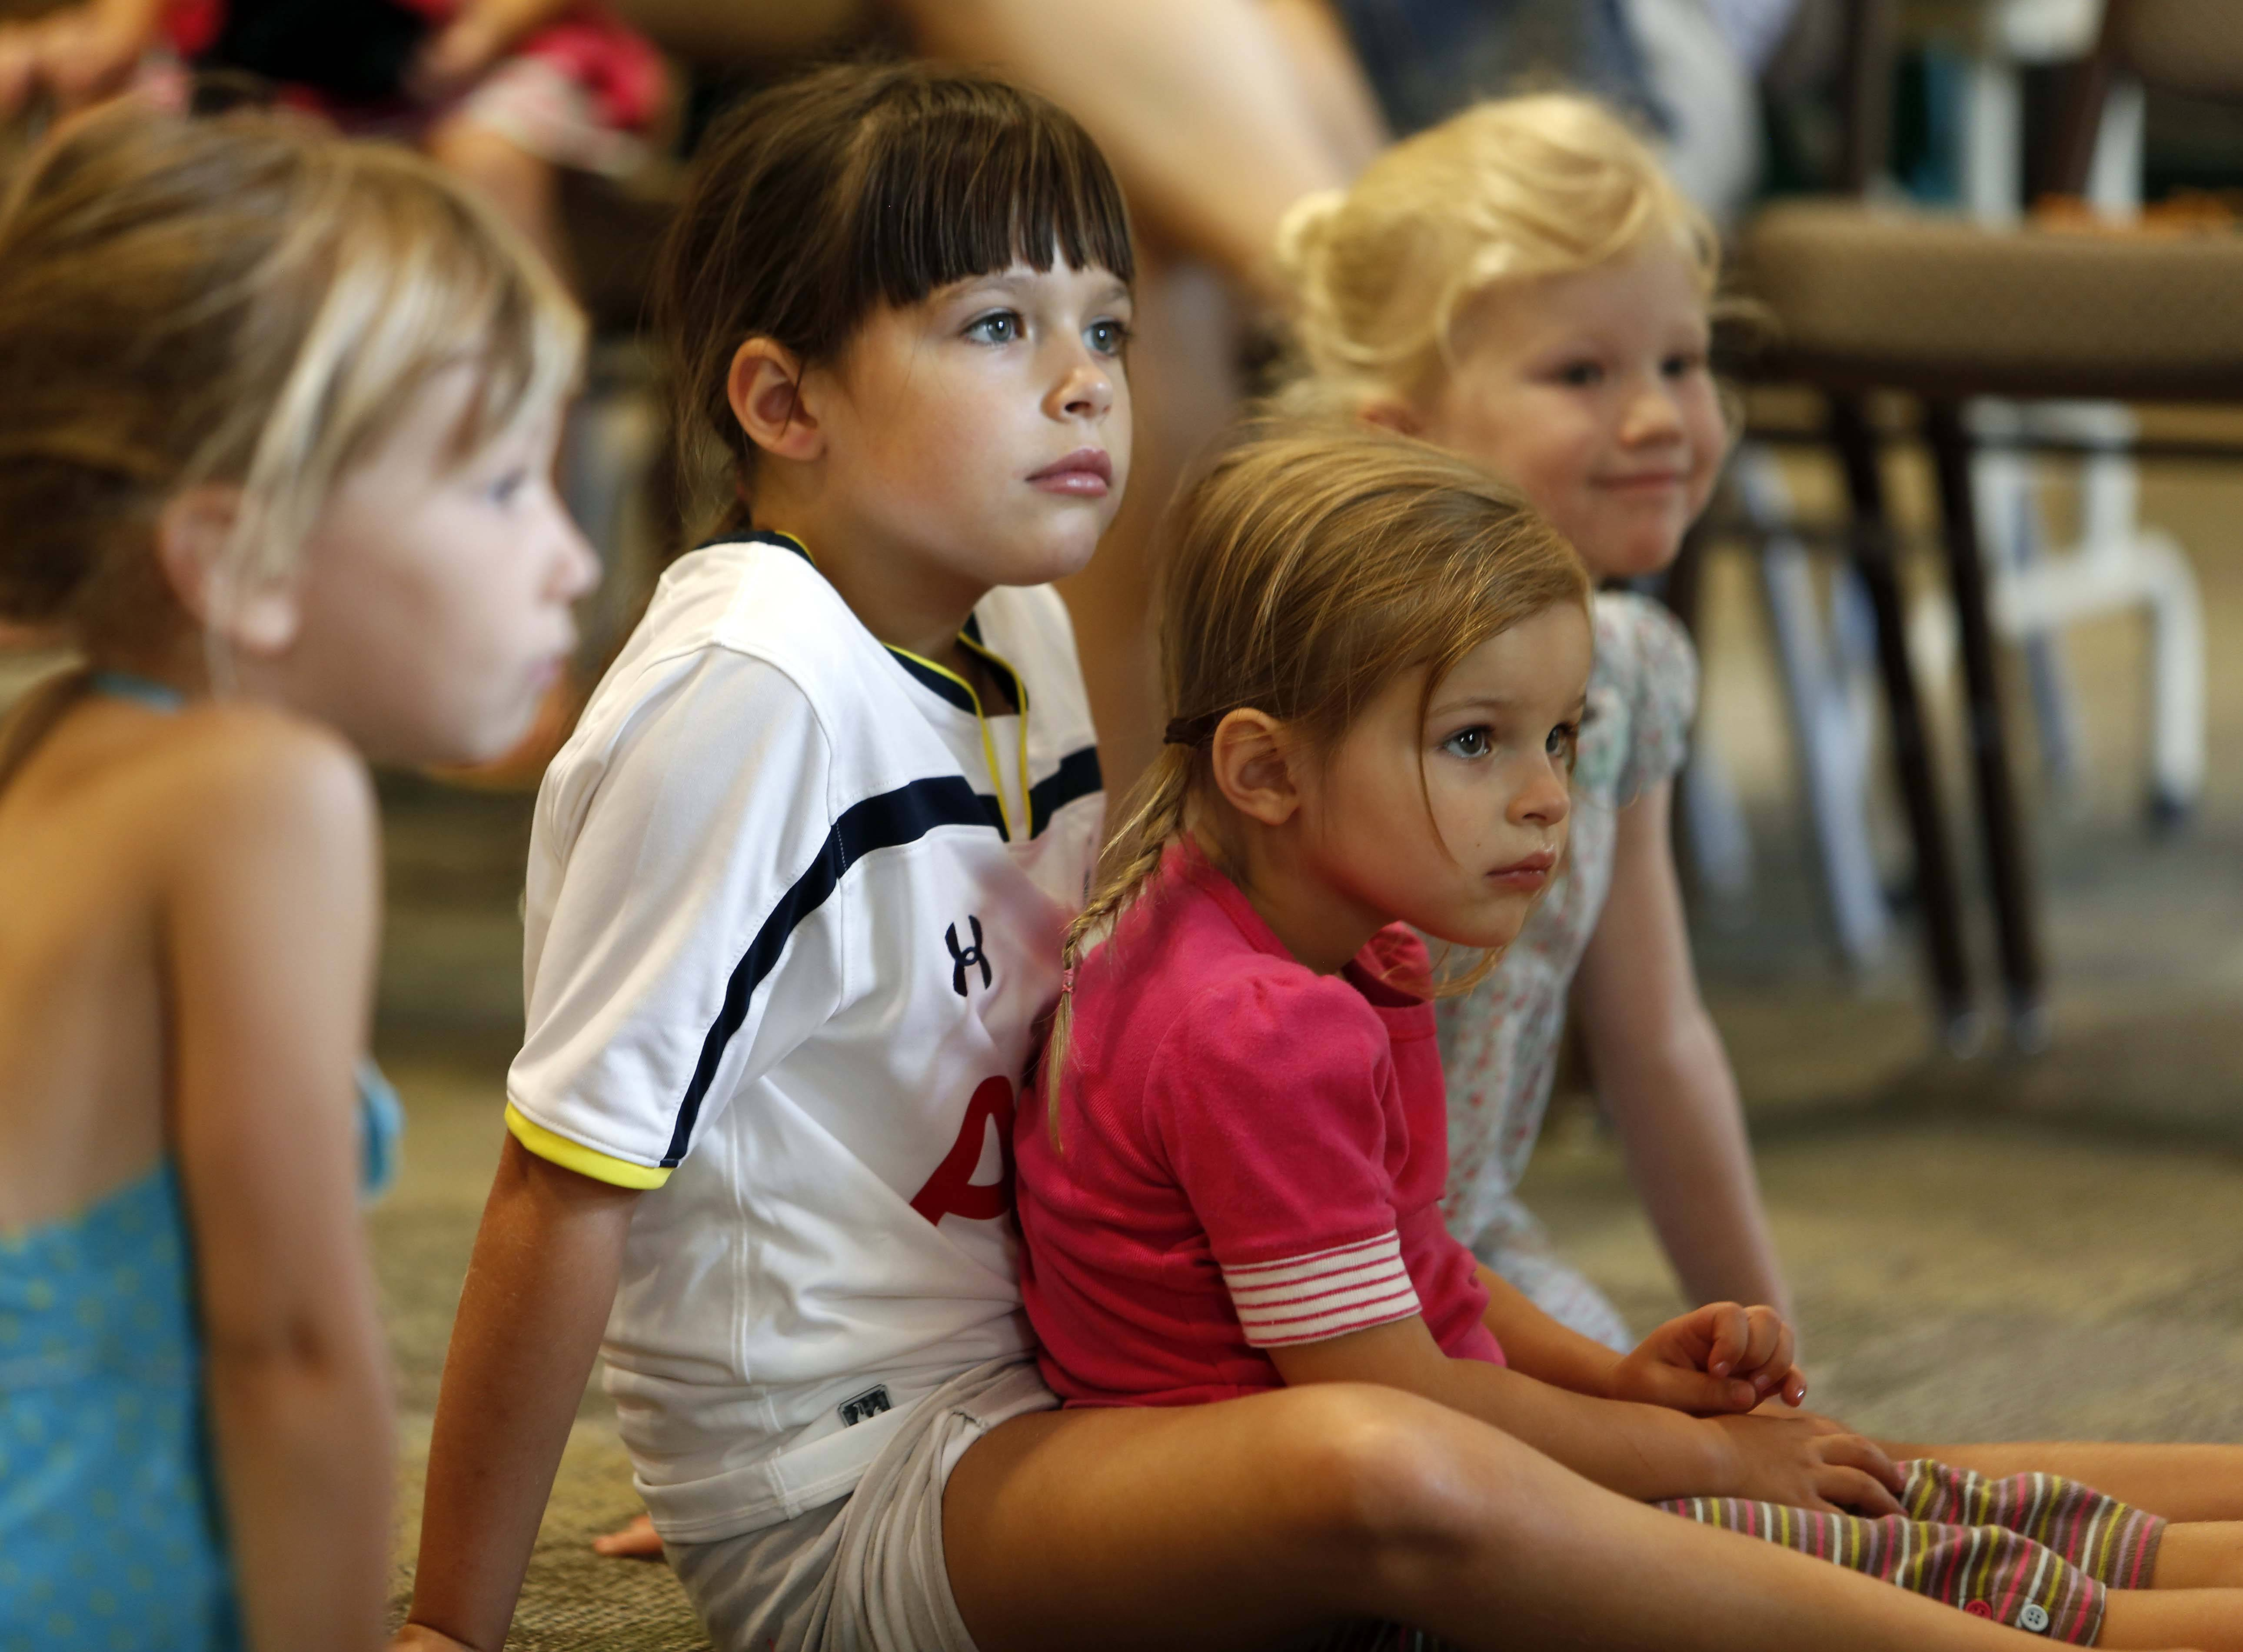 Seven-year-old Maggie Krause, center, of Oak Brook, holds her sister Hannah, 3, on her lap while listening to the stories.